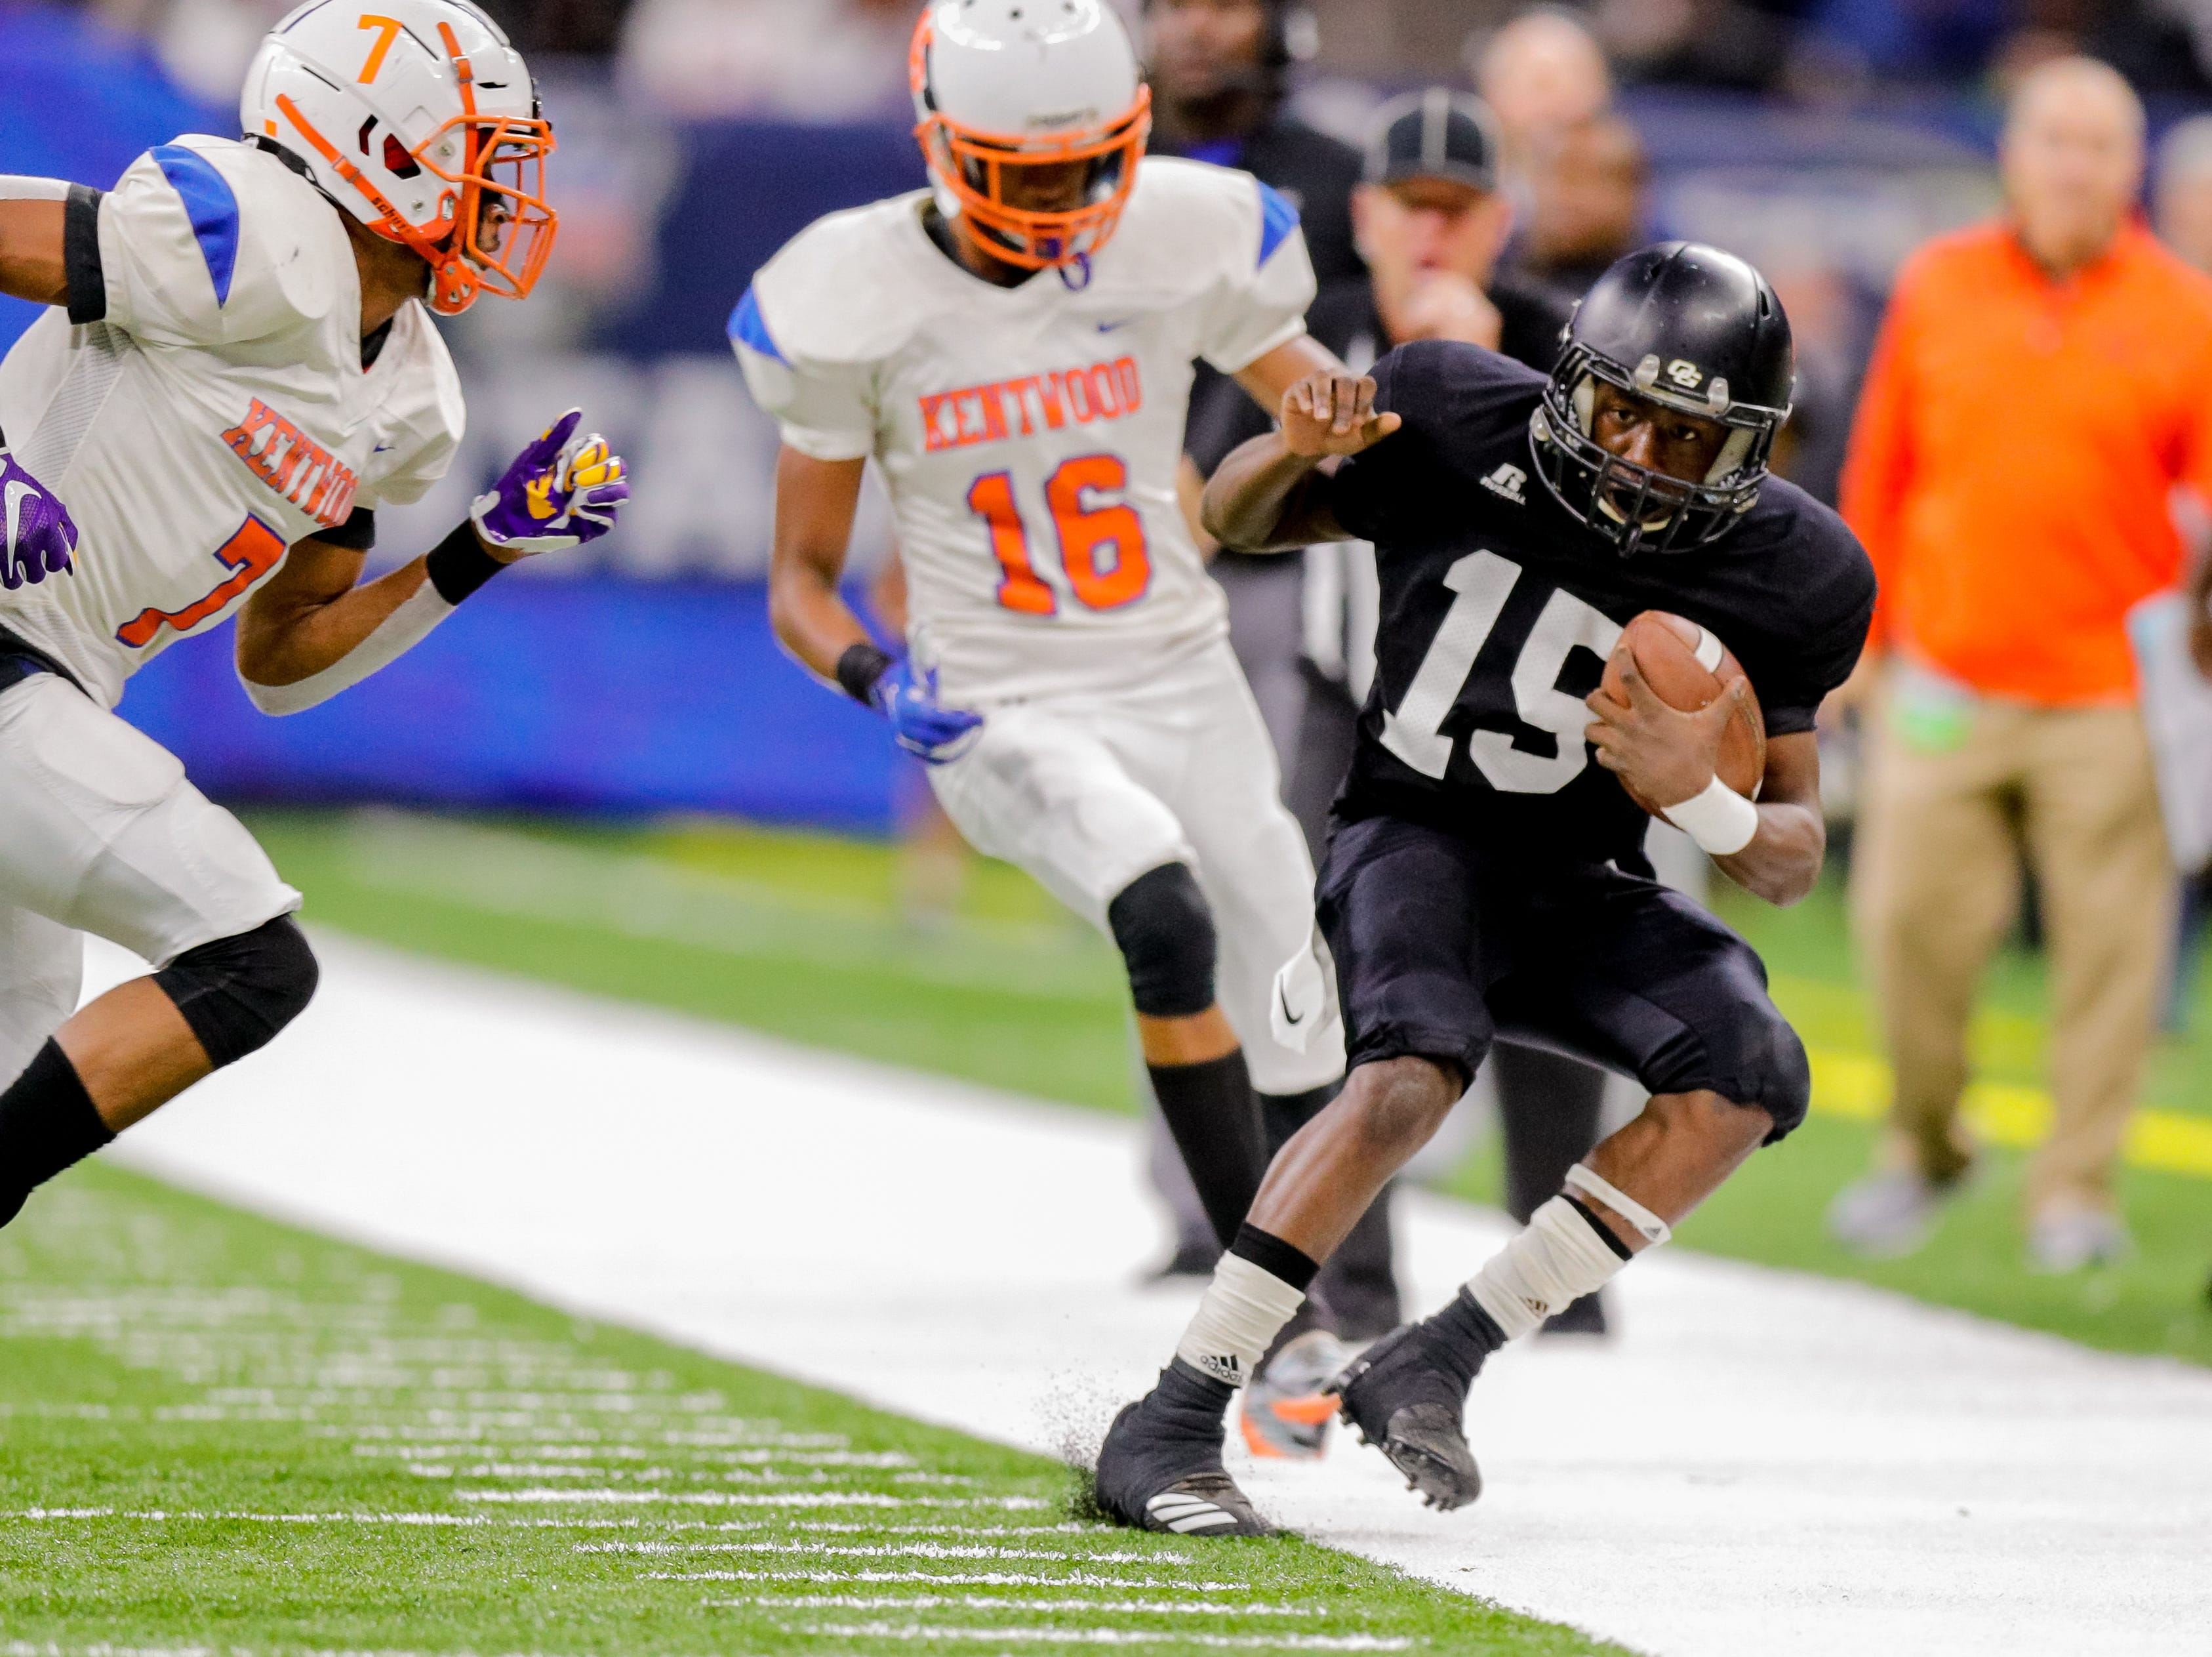 For Oak Grove, championship pursuit ends in another Kentwood loss